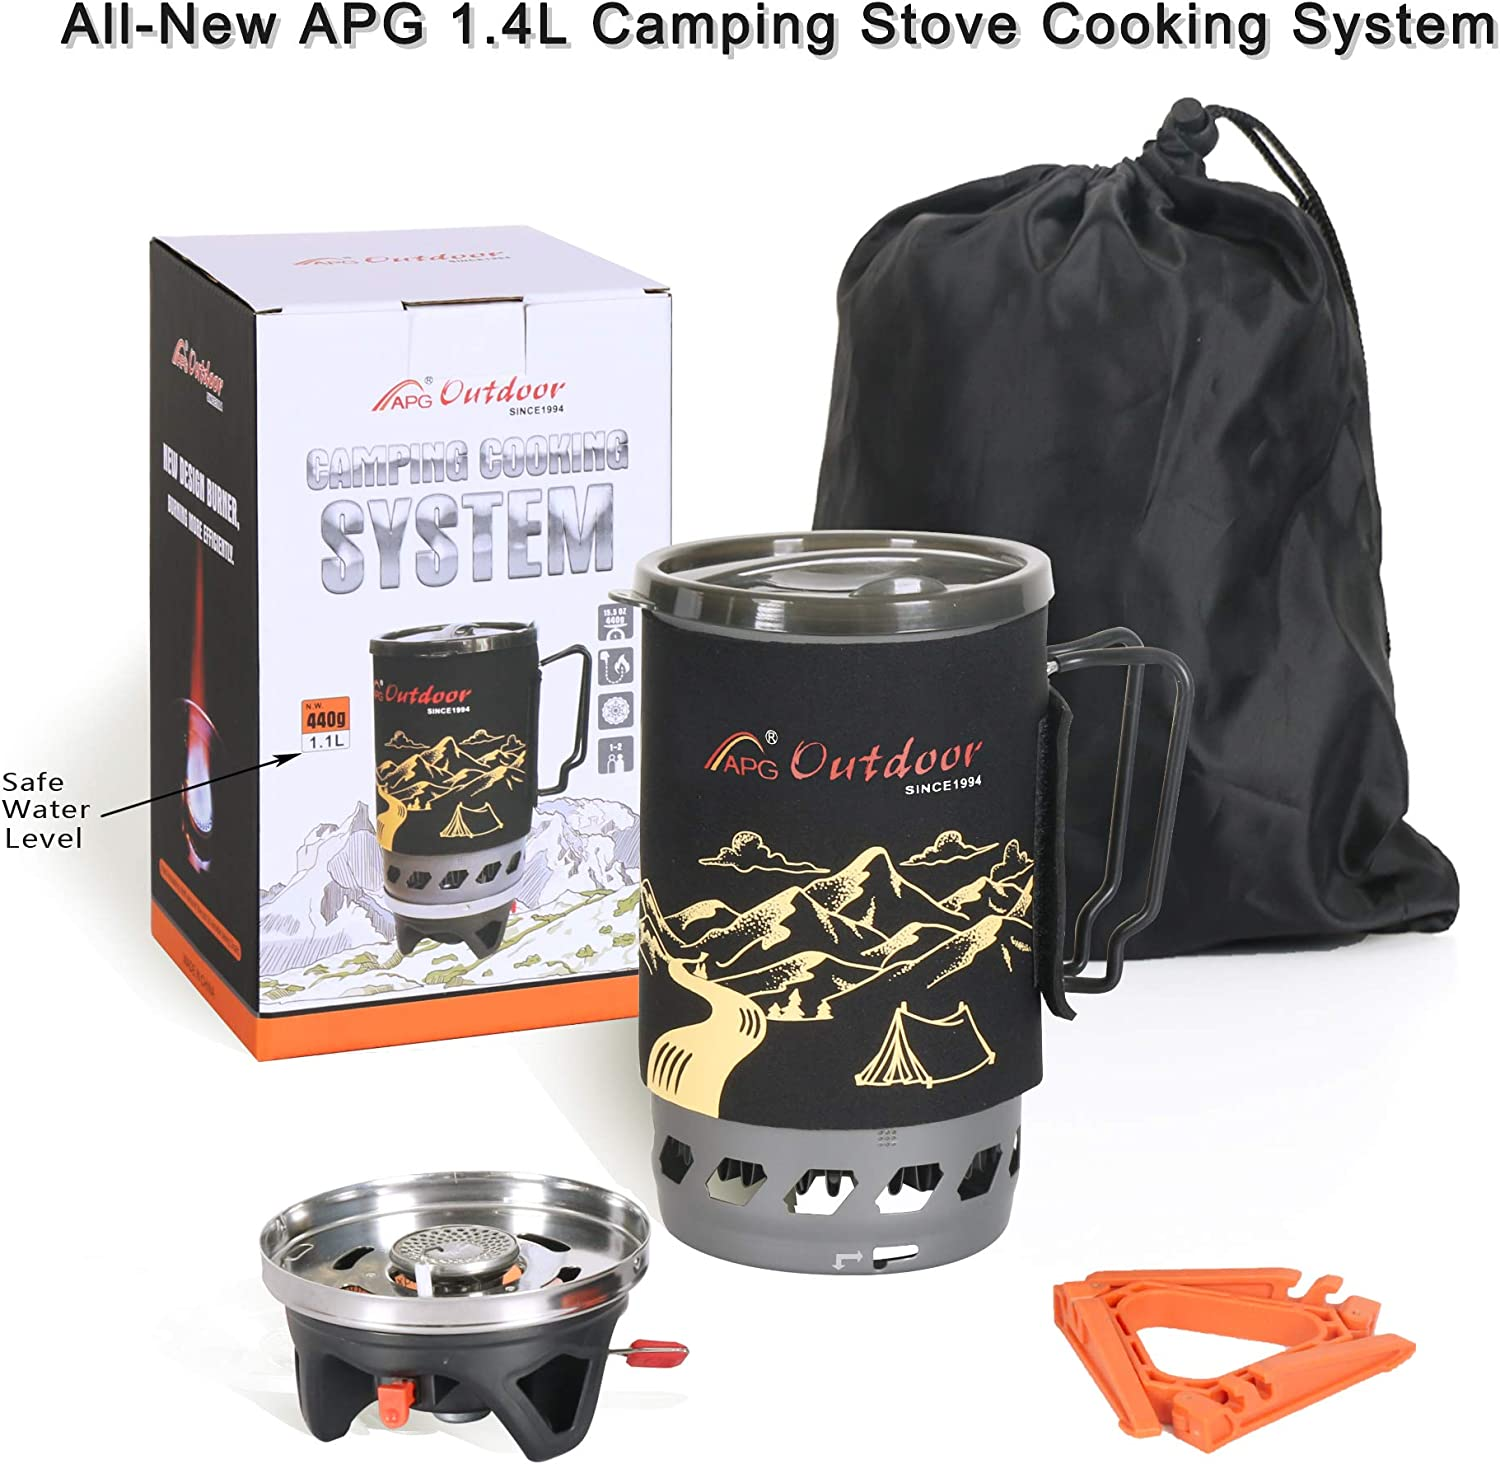 Fast Boil Fuel Efficient Flash Cooking Propane Burner Outdoor Hiking Backpacking Camp Stove Portable Gas Stove Burner APG Mount 1.4-Liter Camping Stove Cooking System